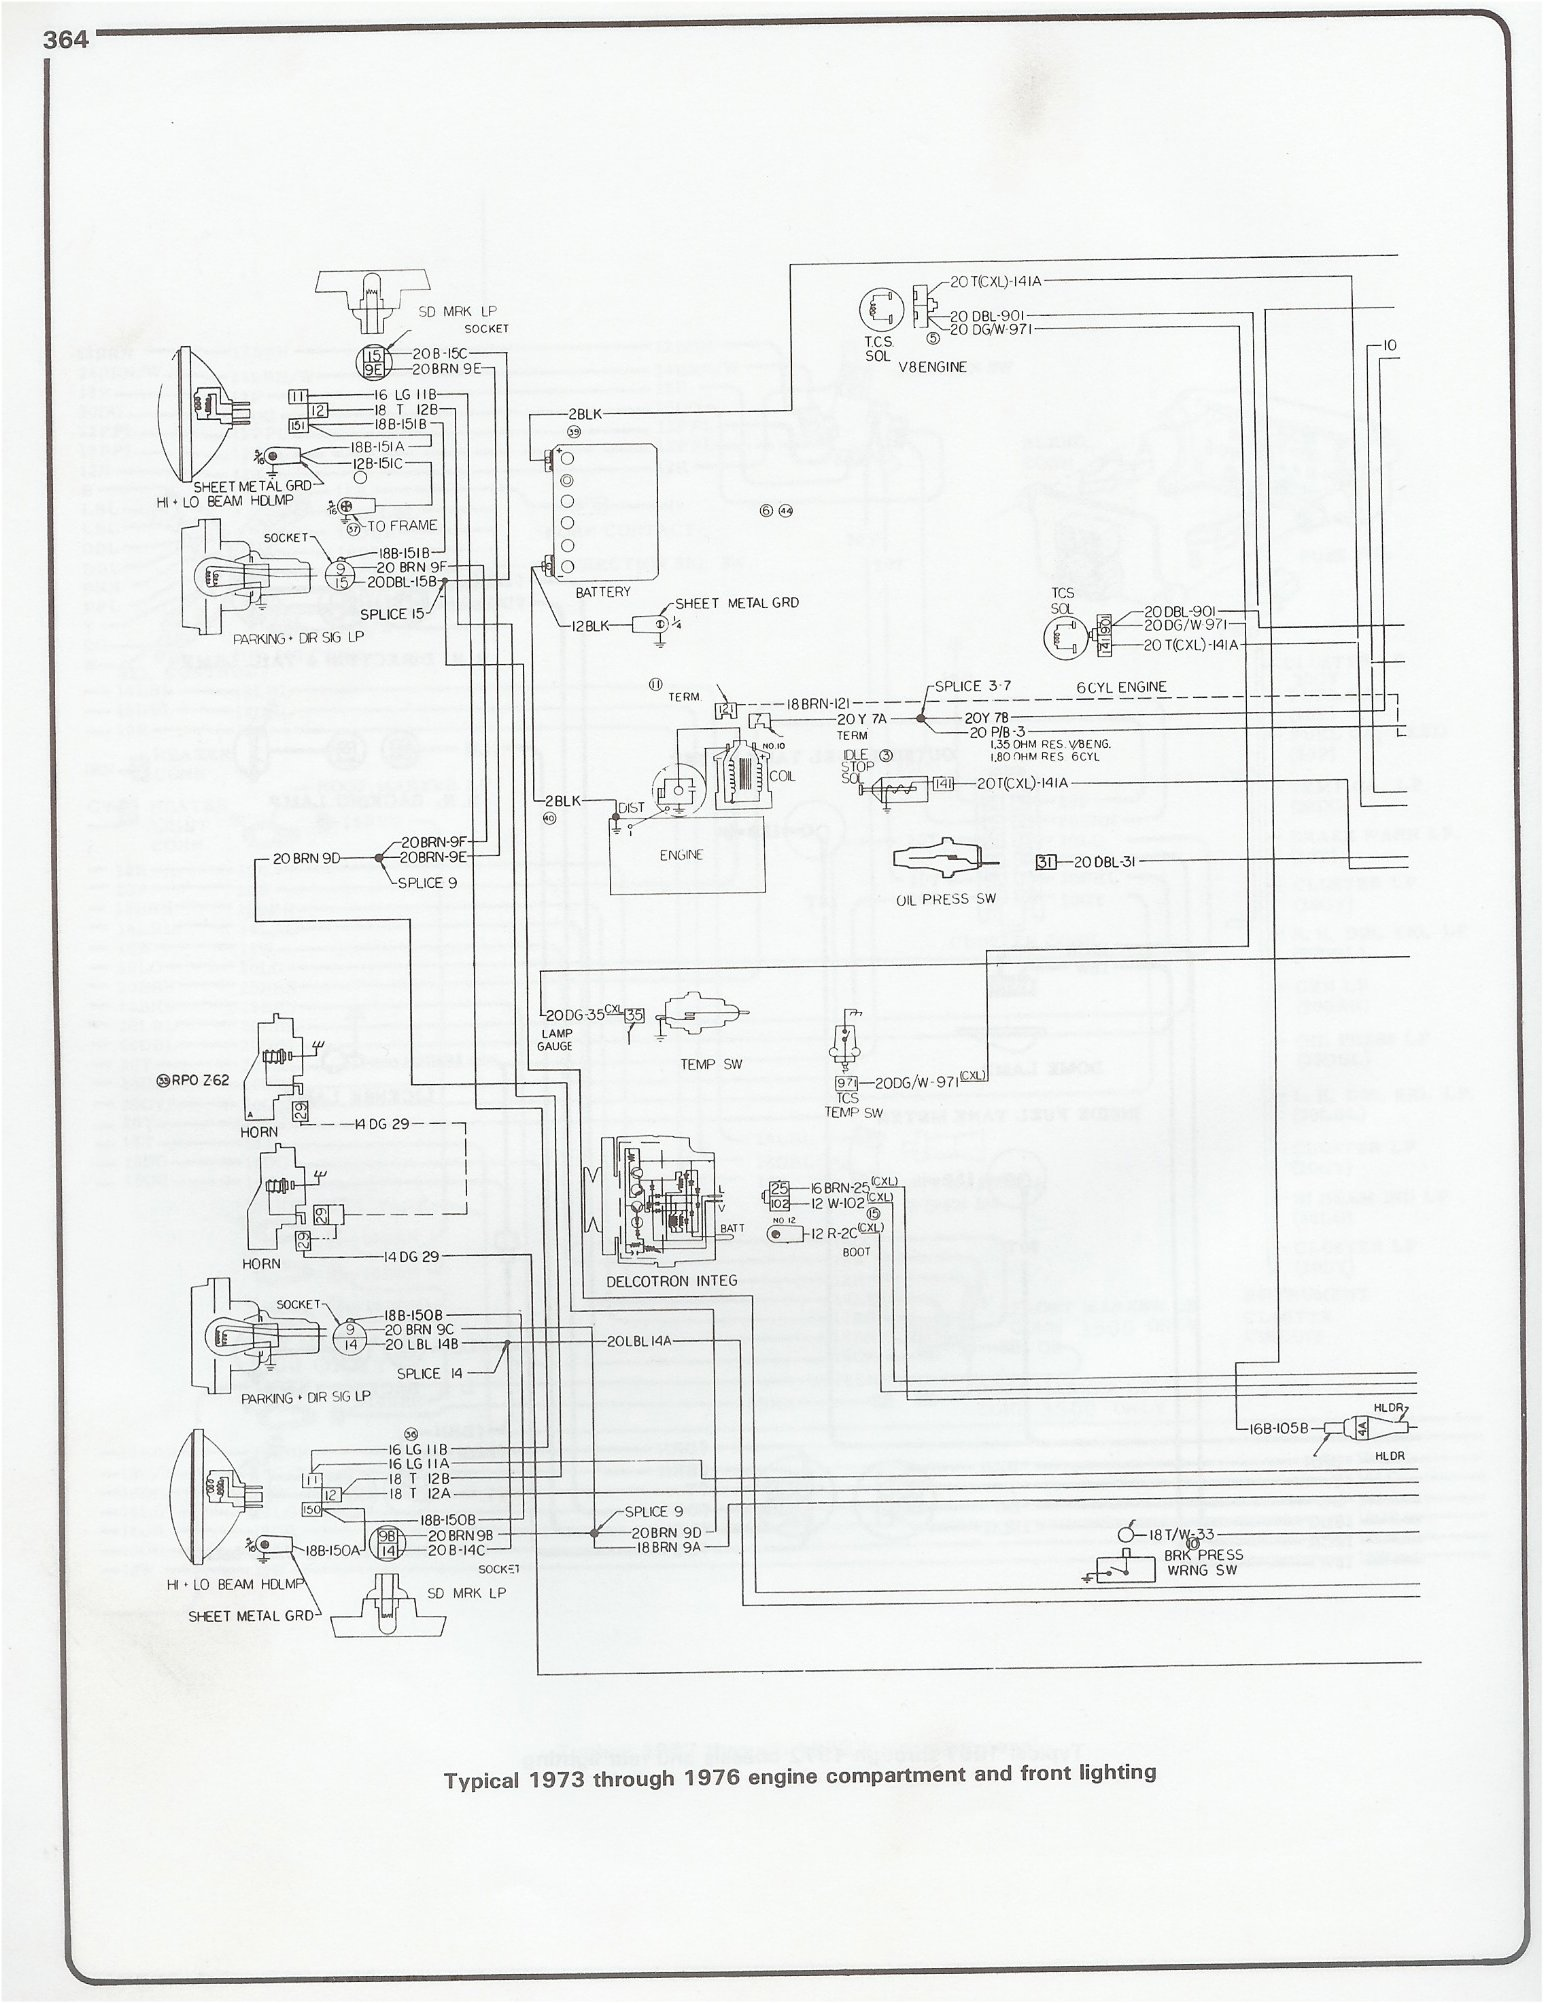 73 76_eng_frt_light complete 73 87 wiring diagrams  at crackthecode.co